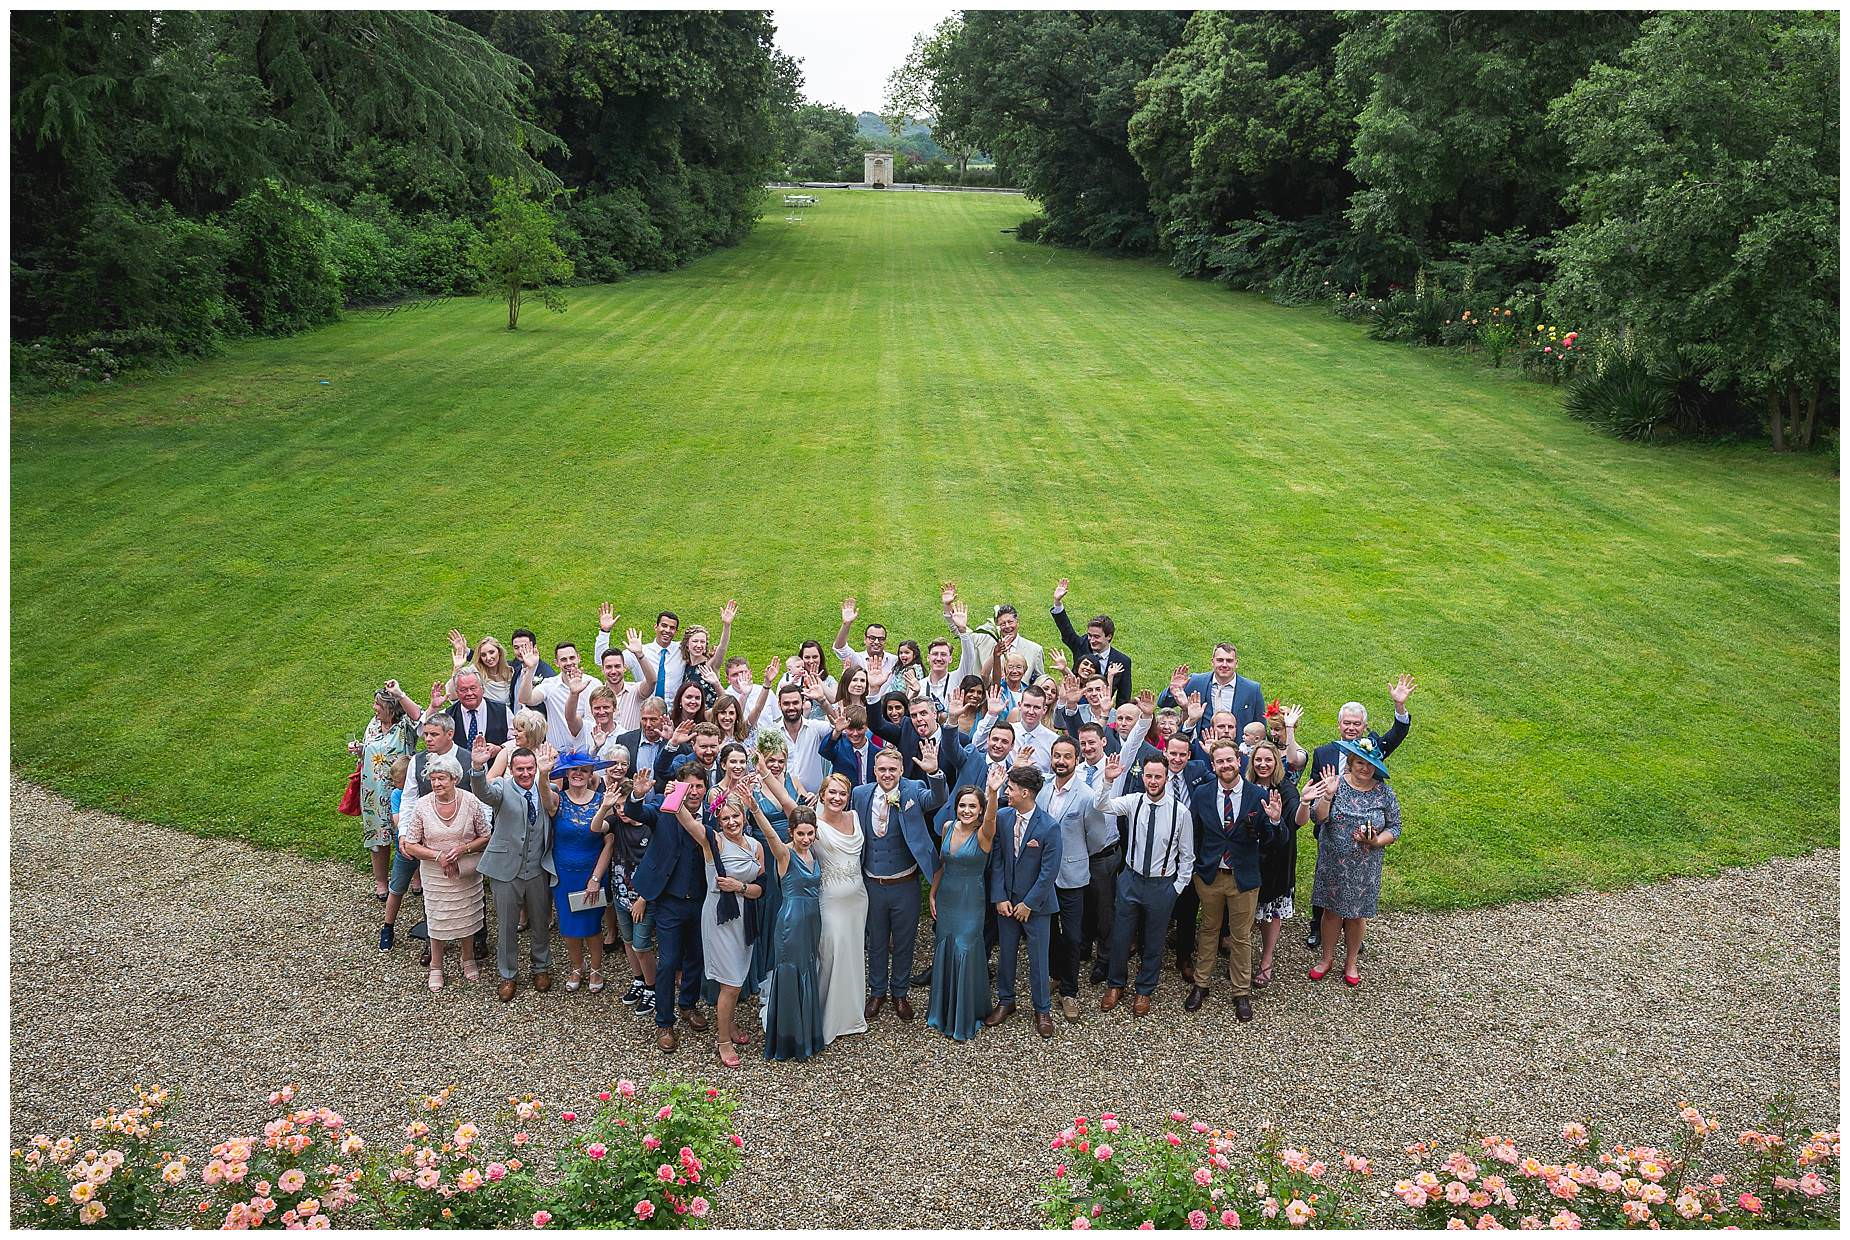 Group picture of all the guests at Chateau Roquelune Wedding